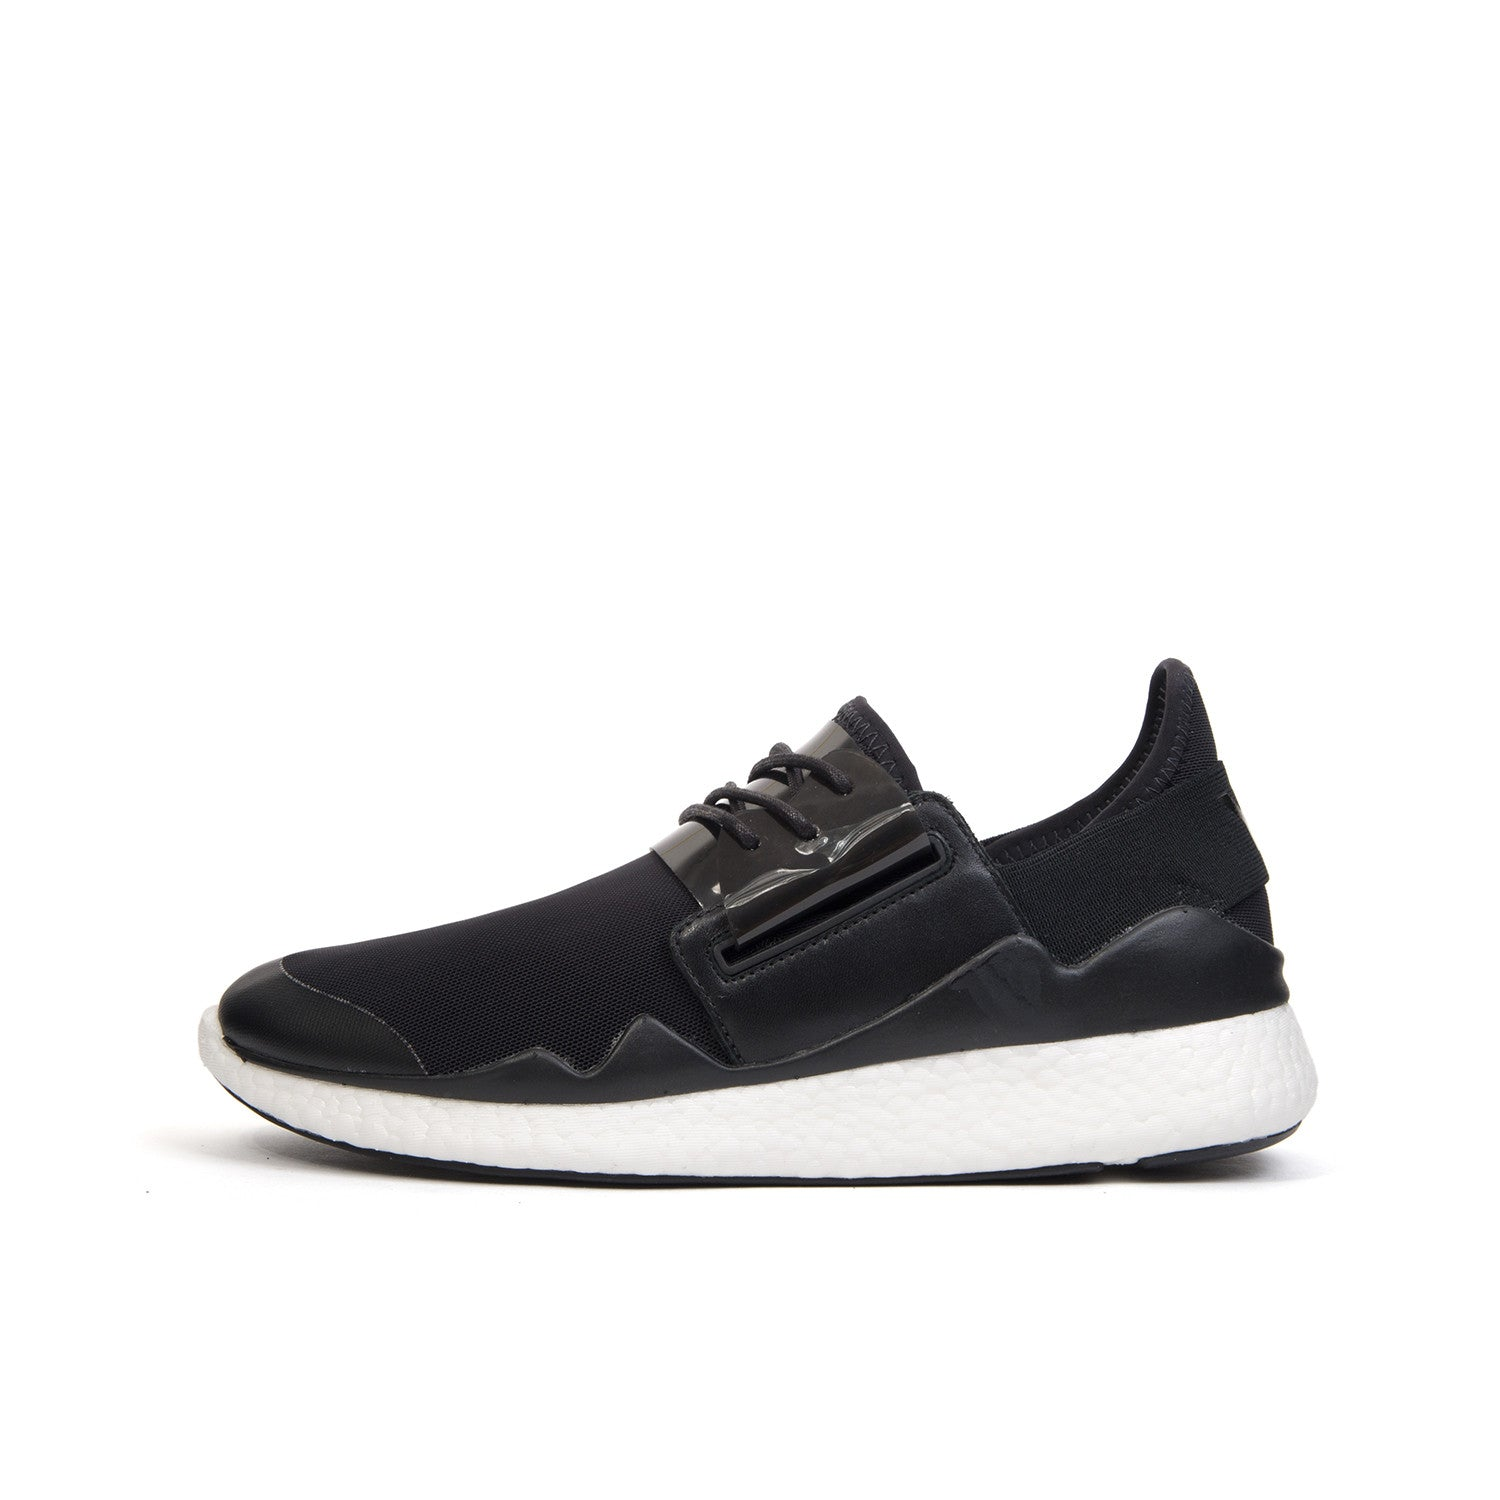 adidas Y-3 W Chimu Boost Black/Black/White - Concrete